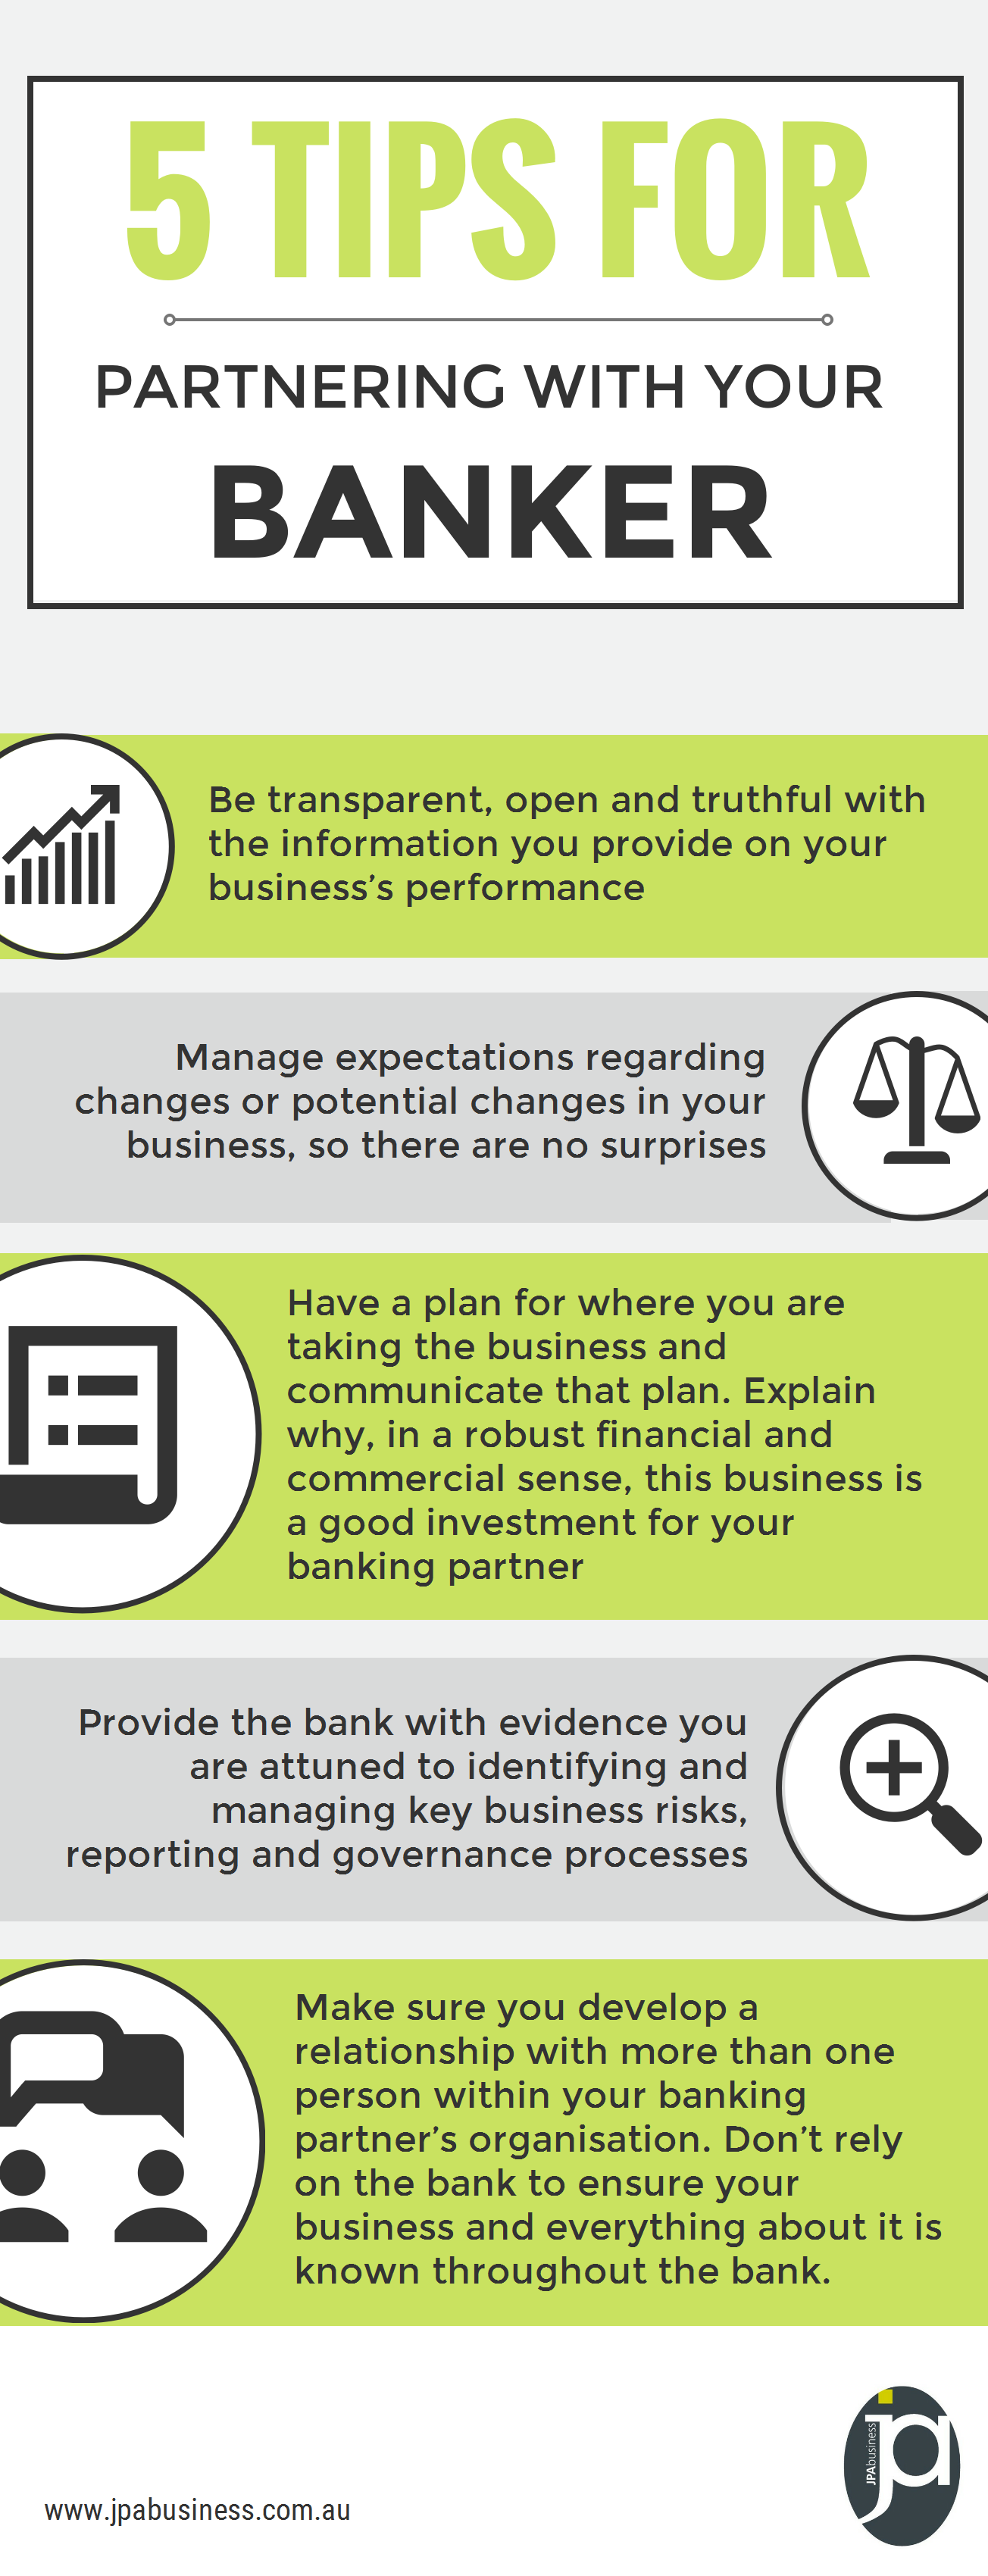 5-tips-for-partnering-with-your-banker.png